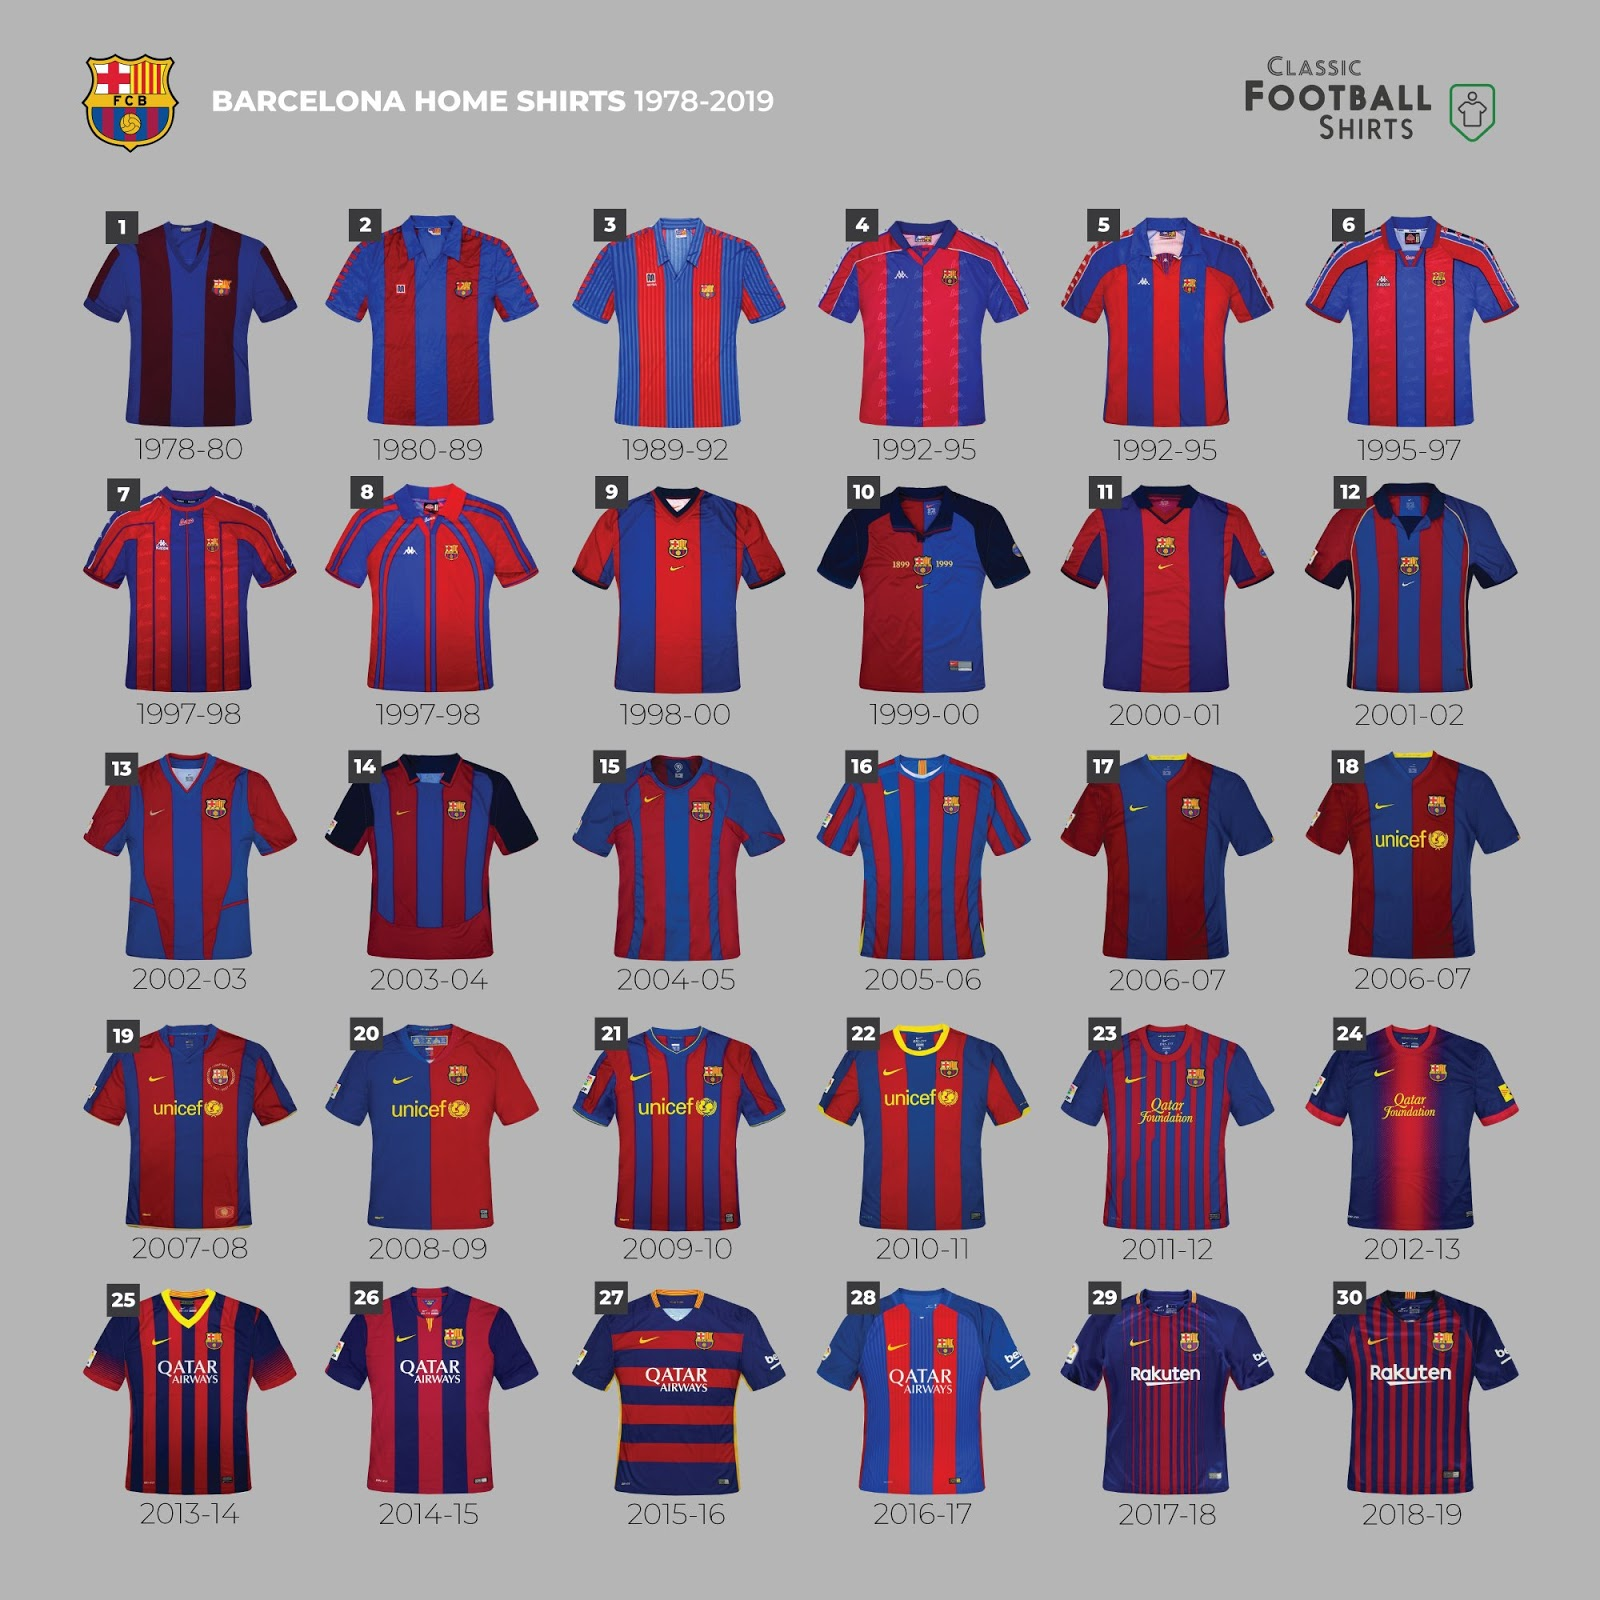 wholesale dealer f846f e30ef We take a look at FC Barcelona s home kits of the past years, including the  30 different Barca home kits the club had since 1978. Thanks to Classic  Football ...